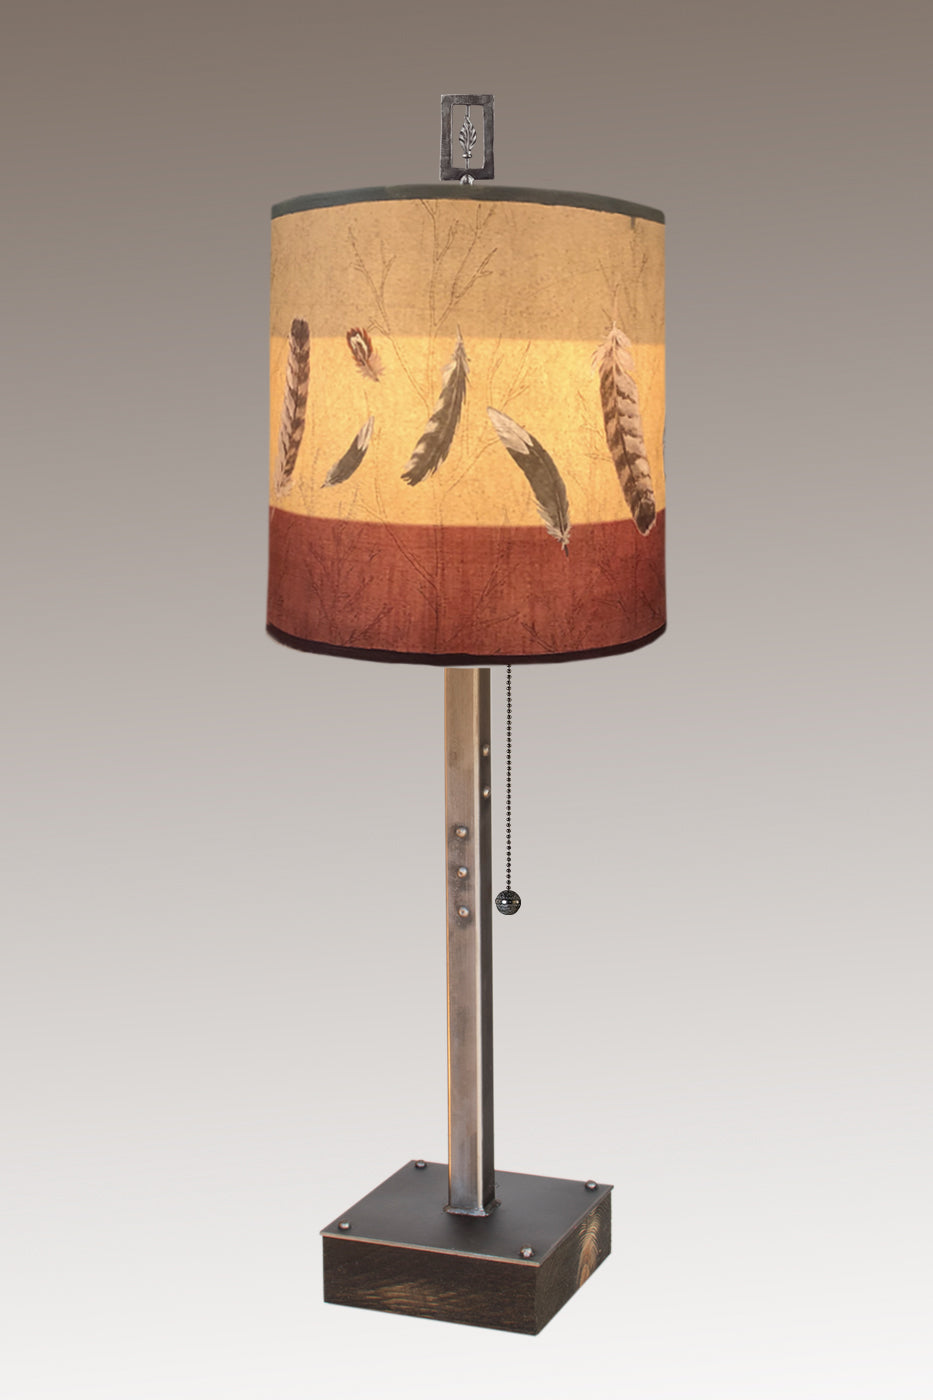 Steel Table Lamp on Wood with Medium Drum Shade in Feathers in Ruby